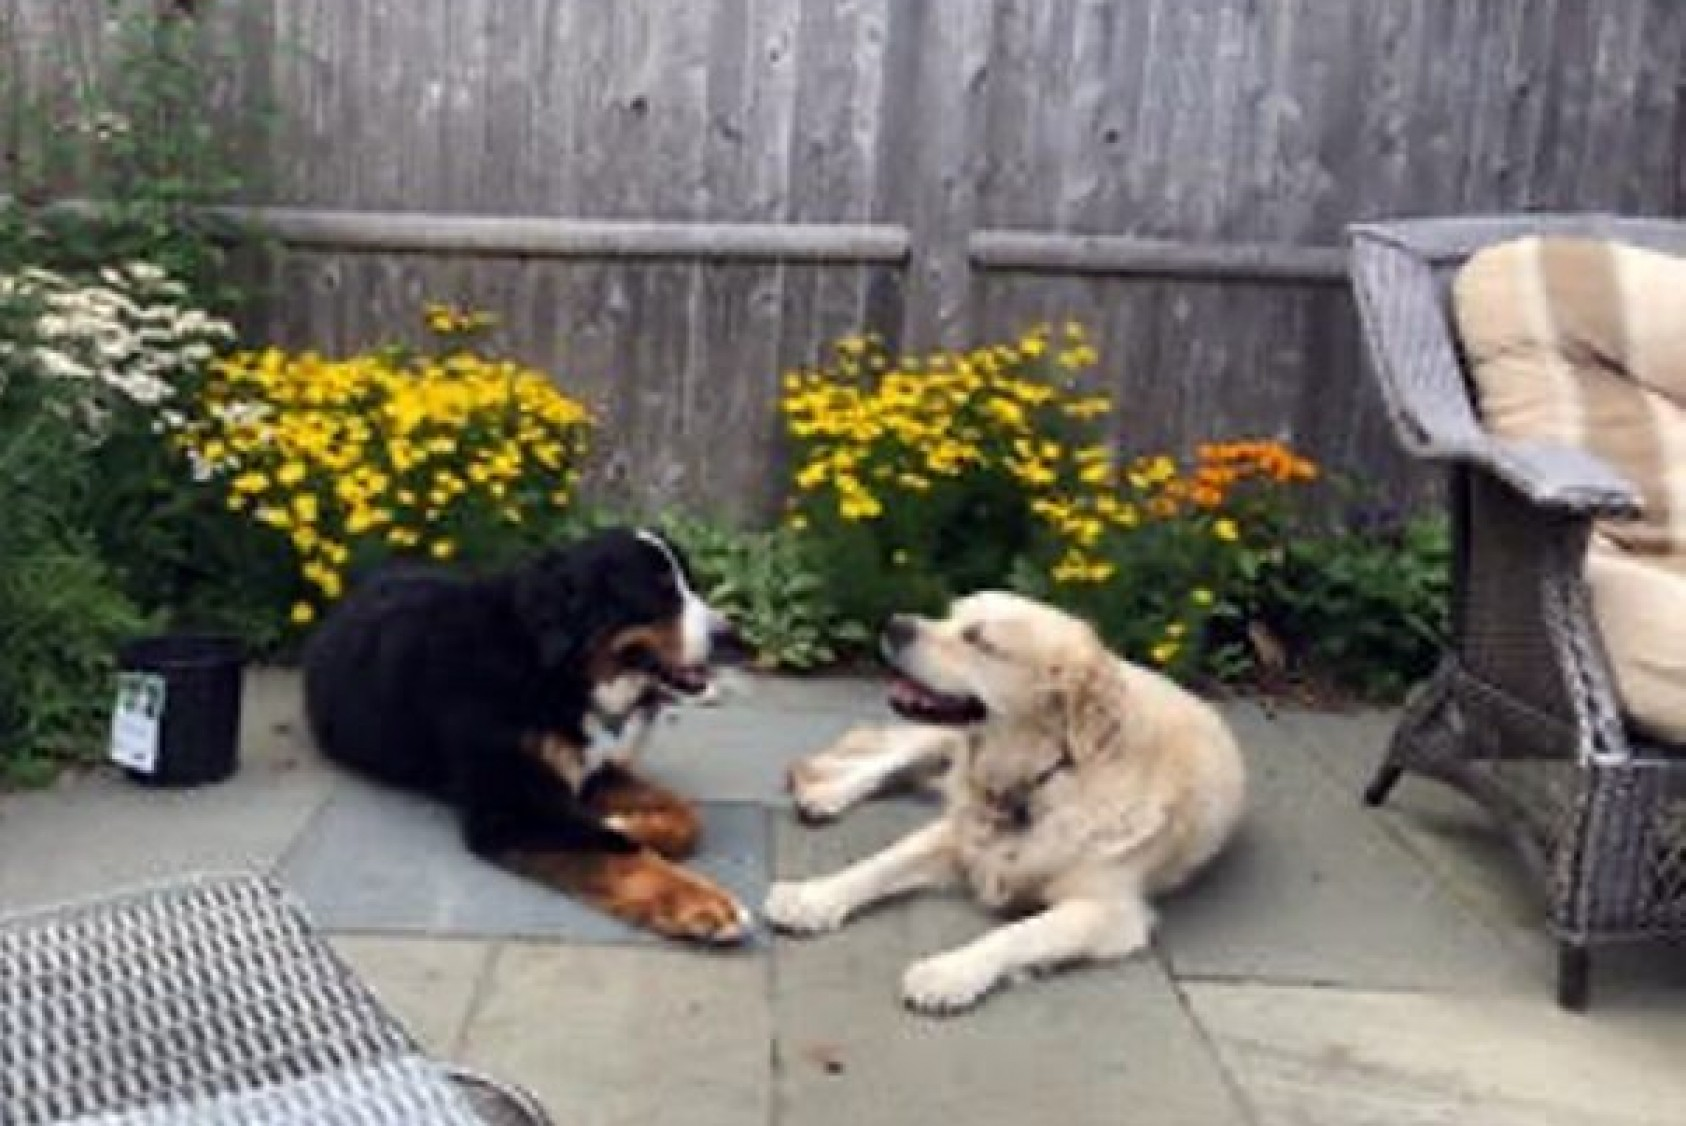 Lilly and Katie, Penny's dogs, having a chat in the garden